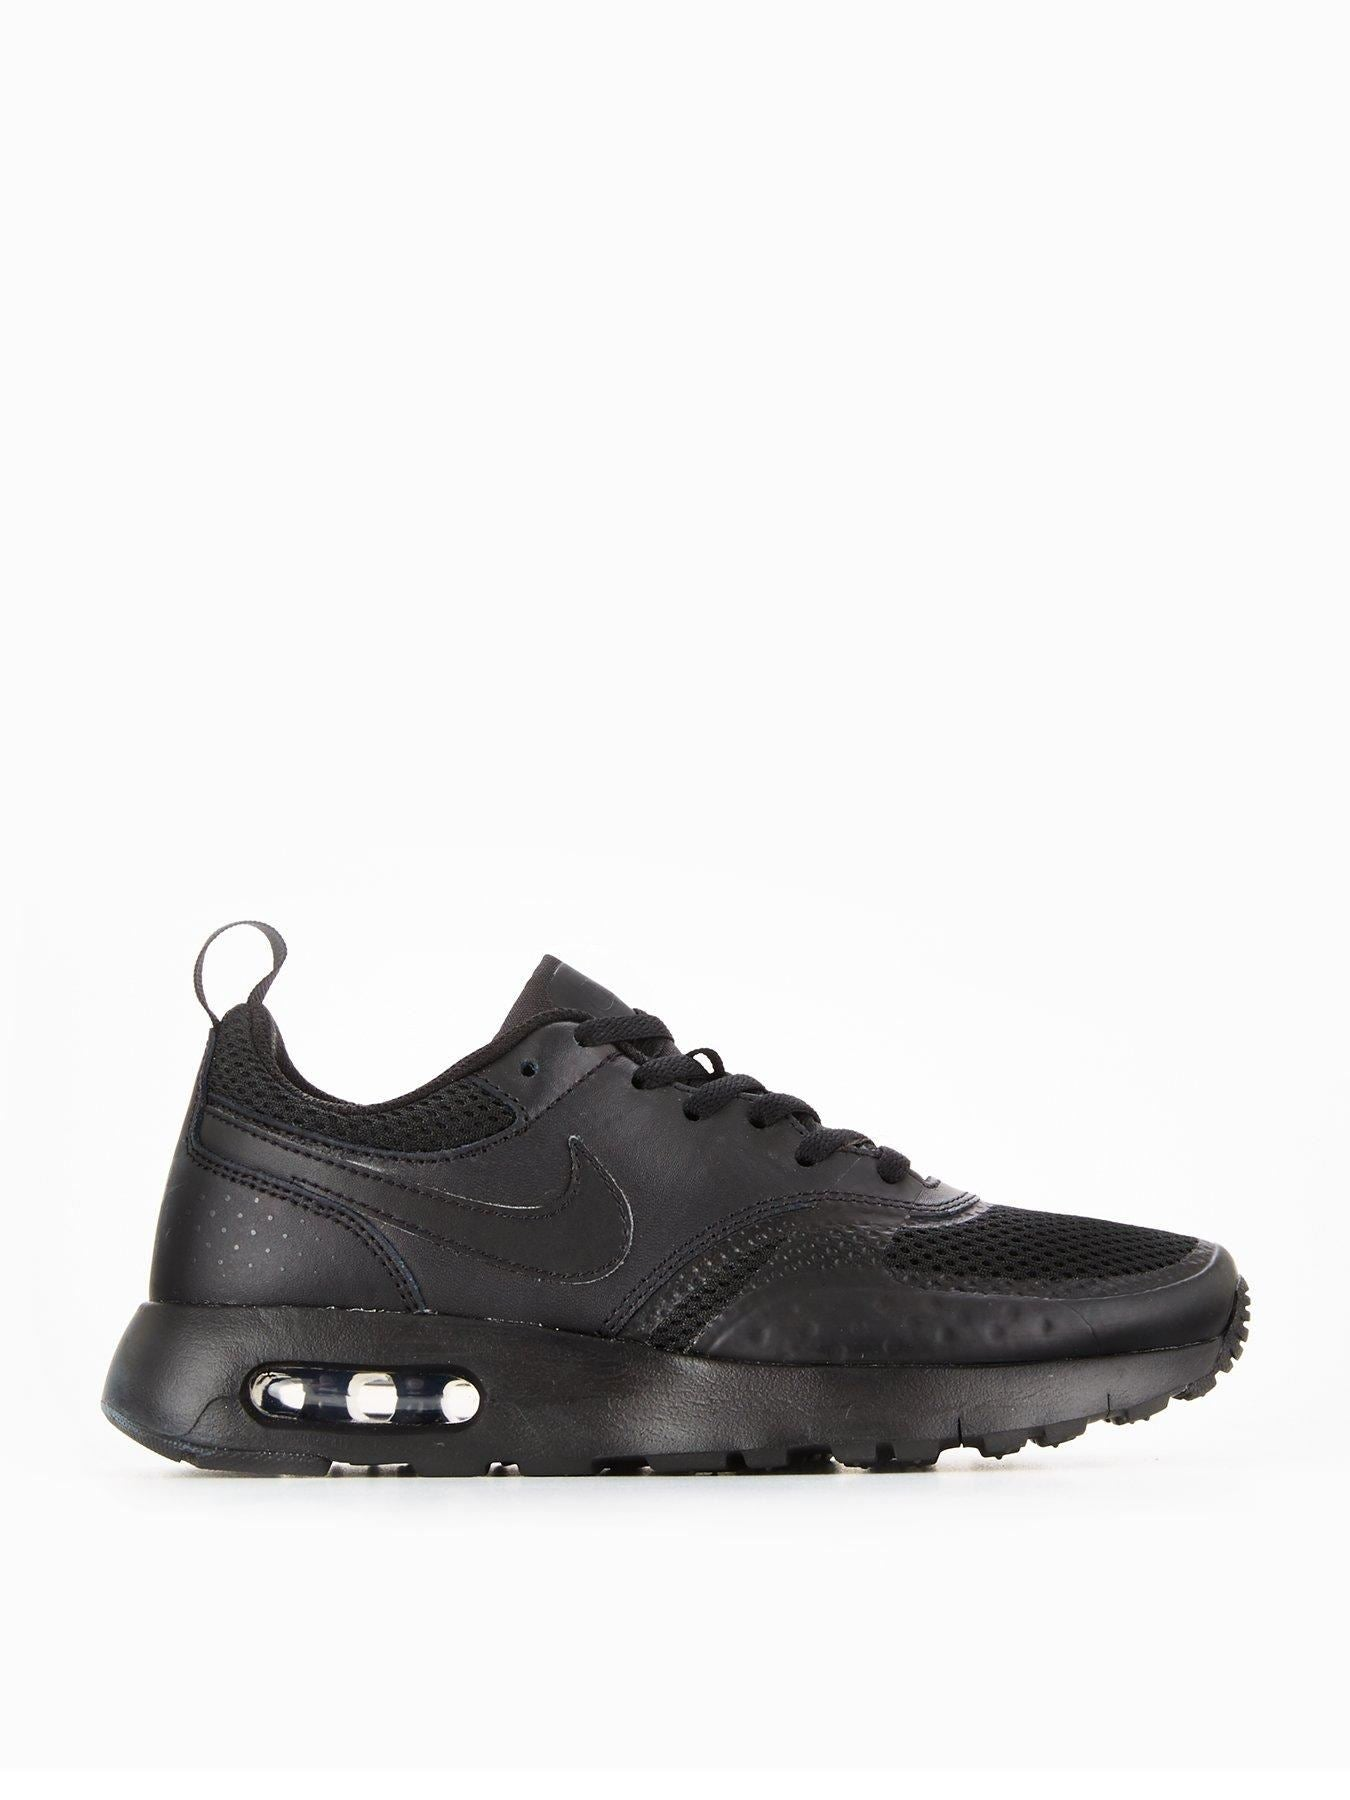 new styles 6501b 1d375 NIKE AIR MAX VISION (GS) 917857 003 CHILDREN S